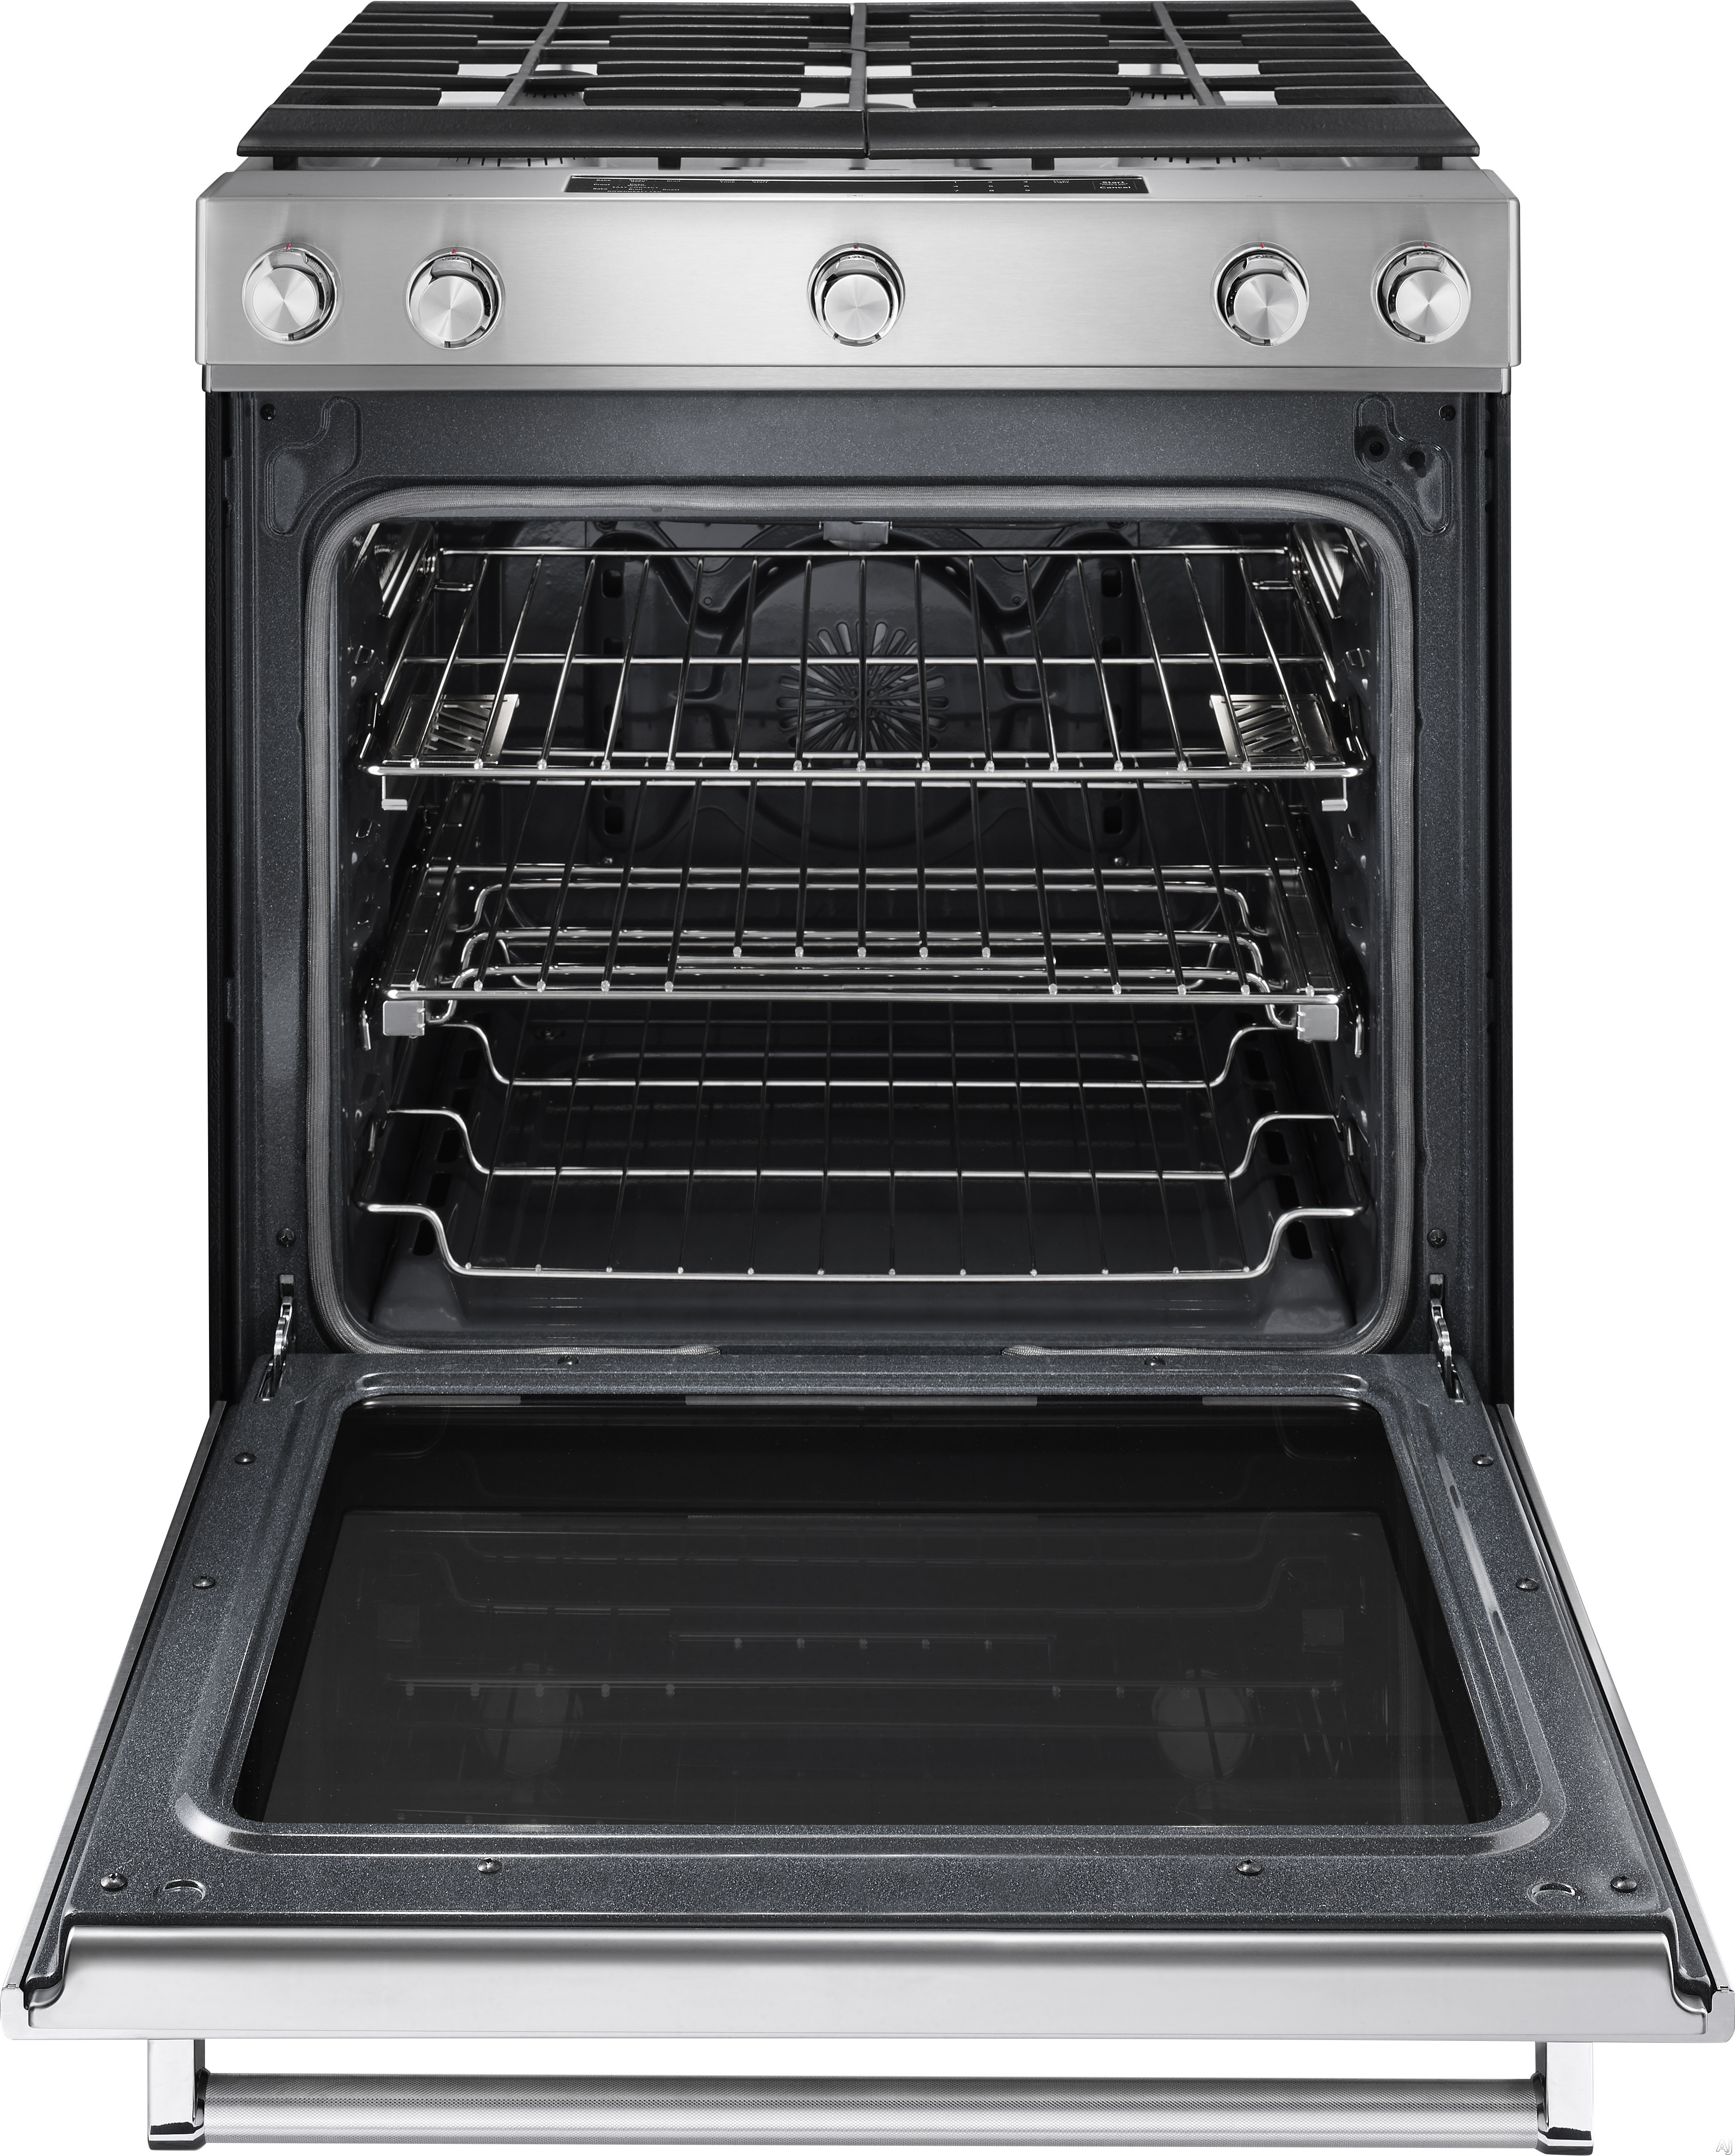 Kitchenaid Black Stainless Steel Complete Kitchen Package: Item Not Found